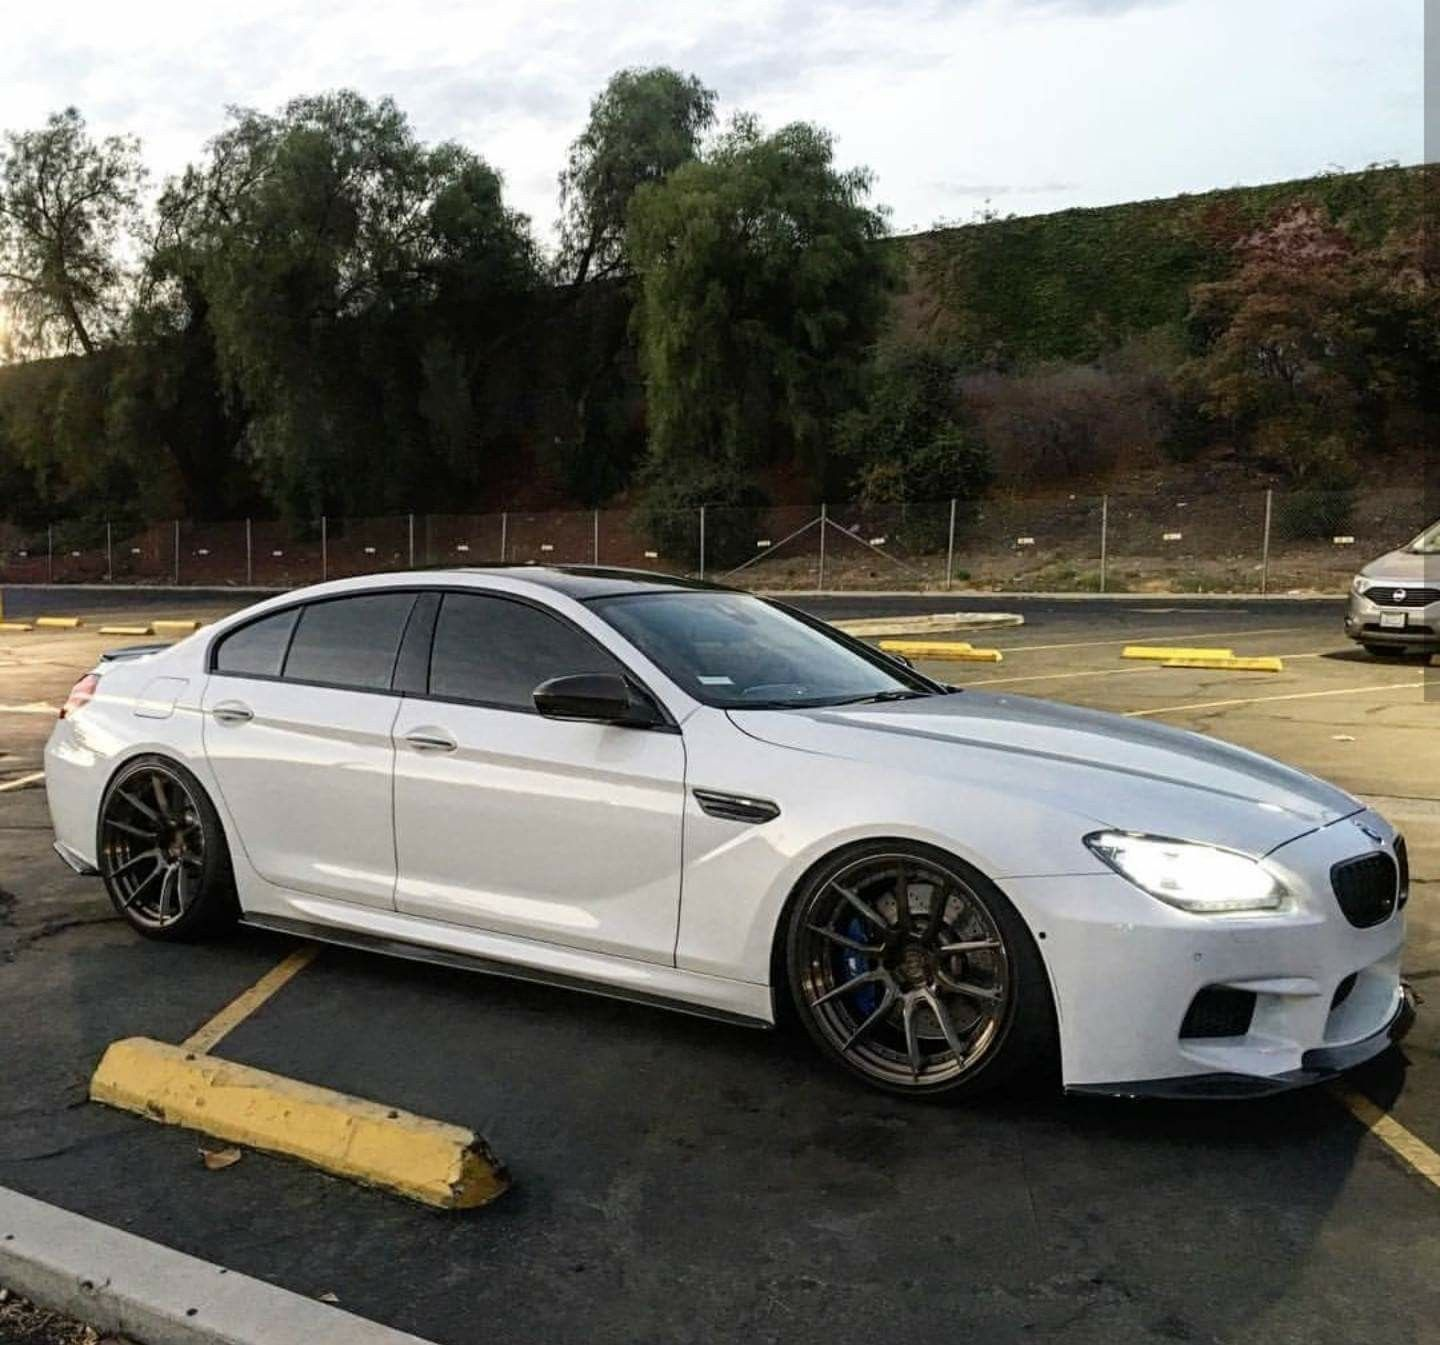 Bmw F06 M6 Gran Coupe White With Images Bmw Bmw 6 Series